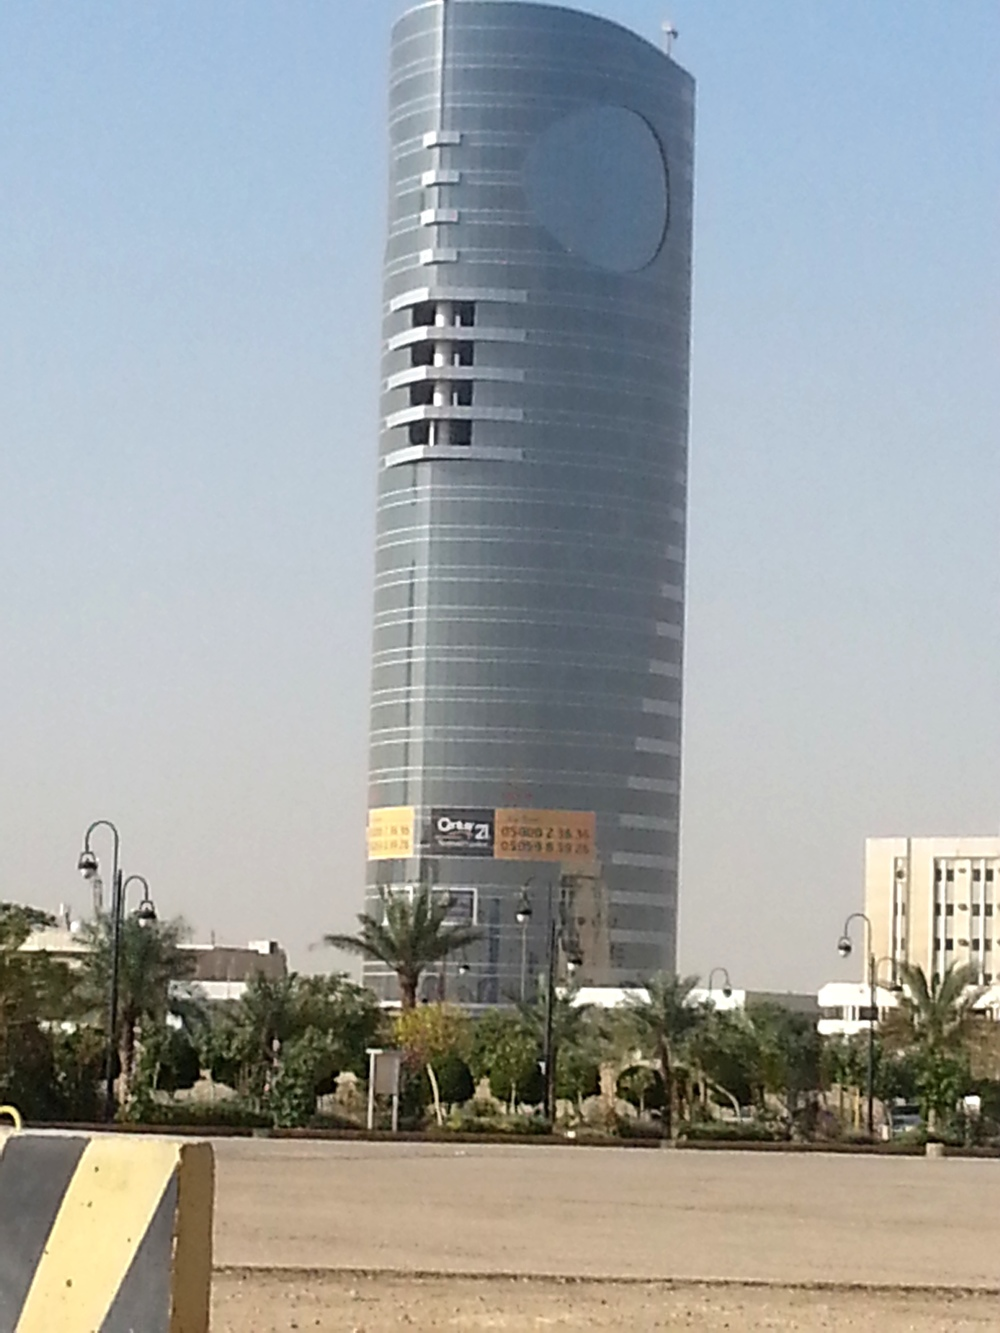 Century 21 is attempting to market and sell the glut of commercial real estate in Riyadh